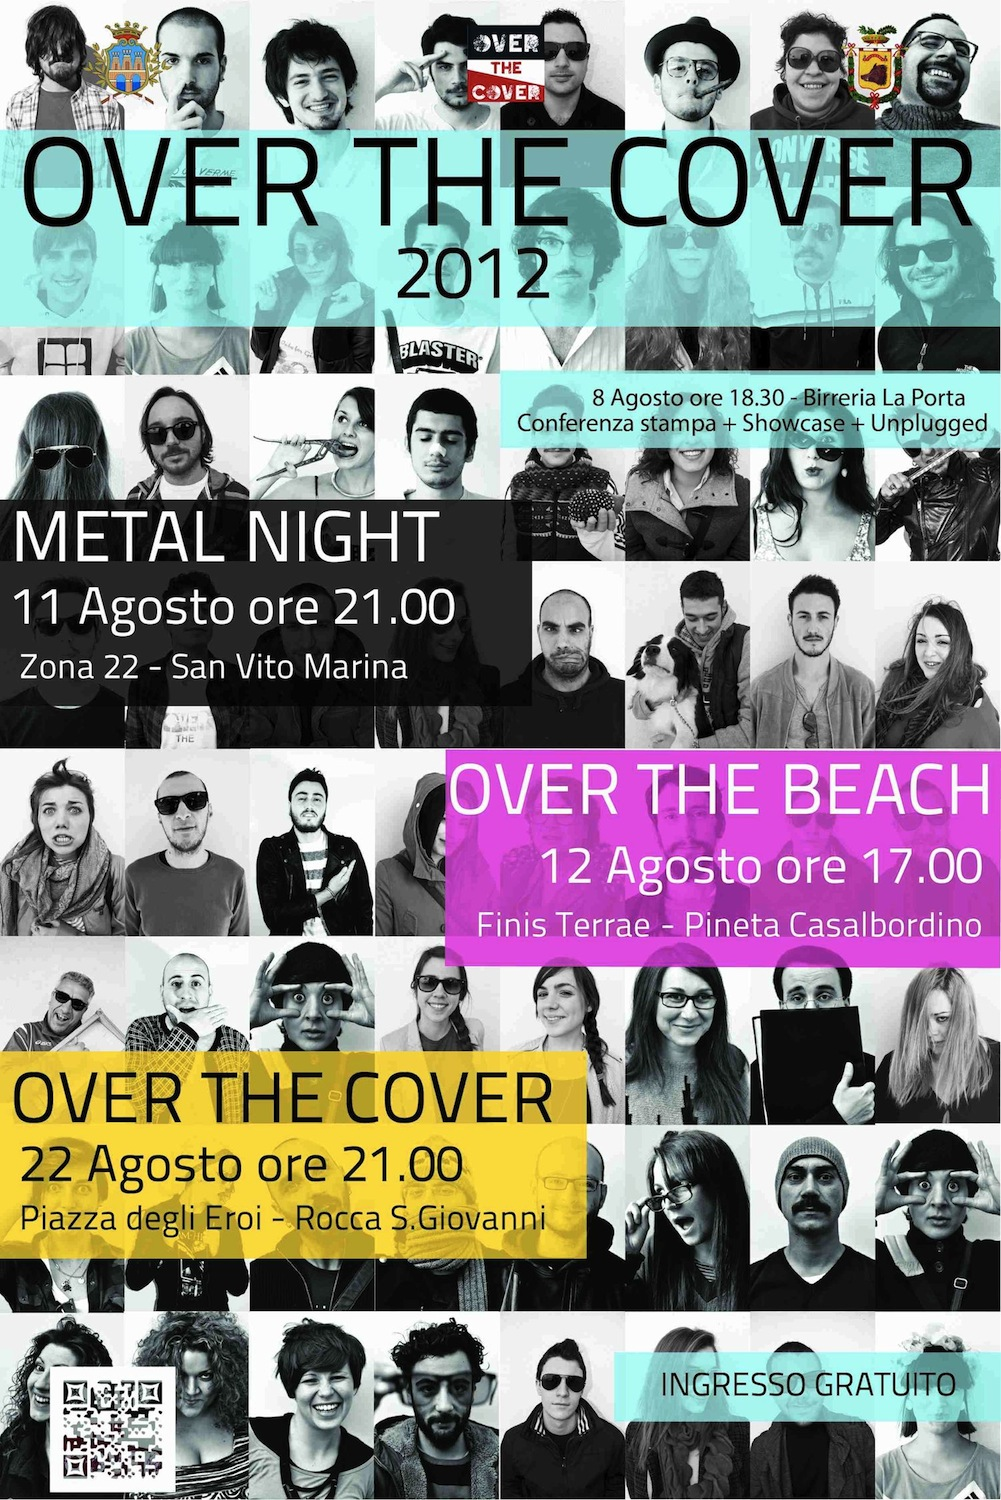 Serata esplosiva per l'ultimo atto di OVER THE COVER